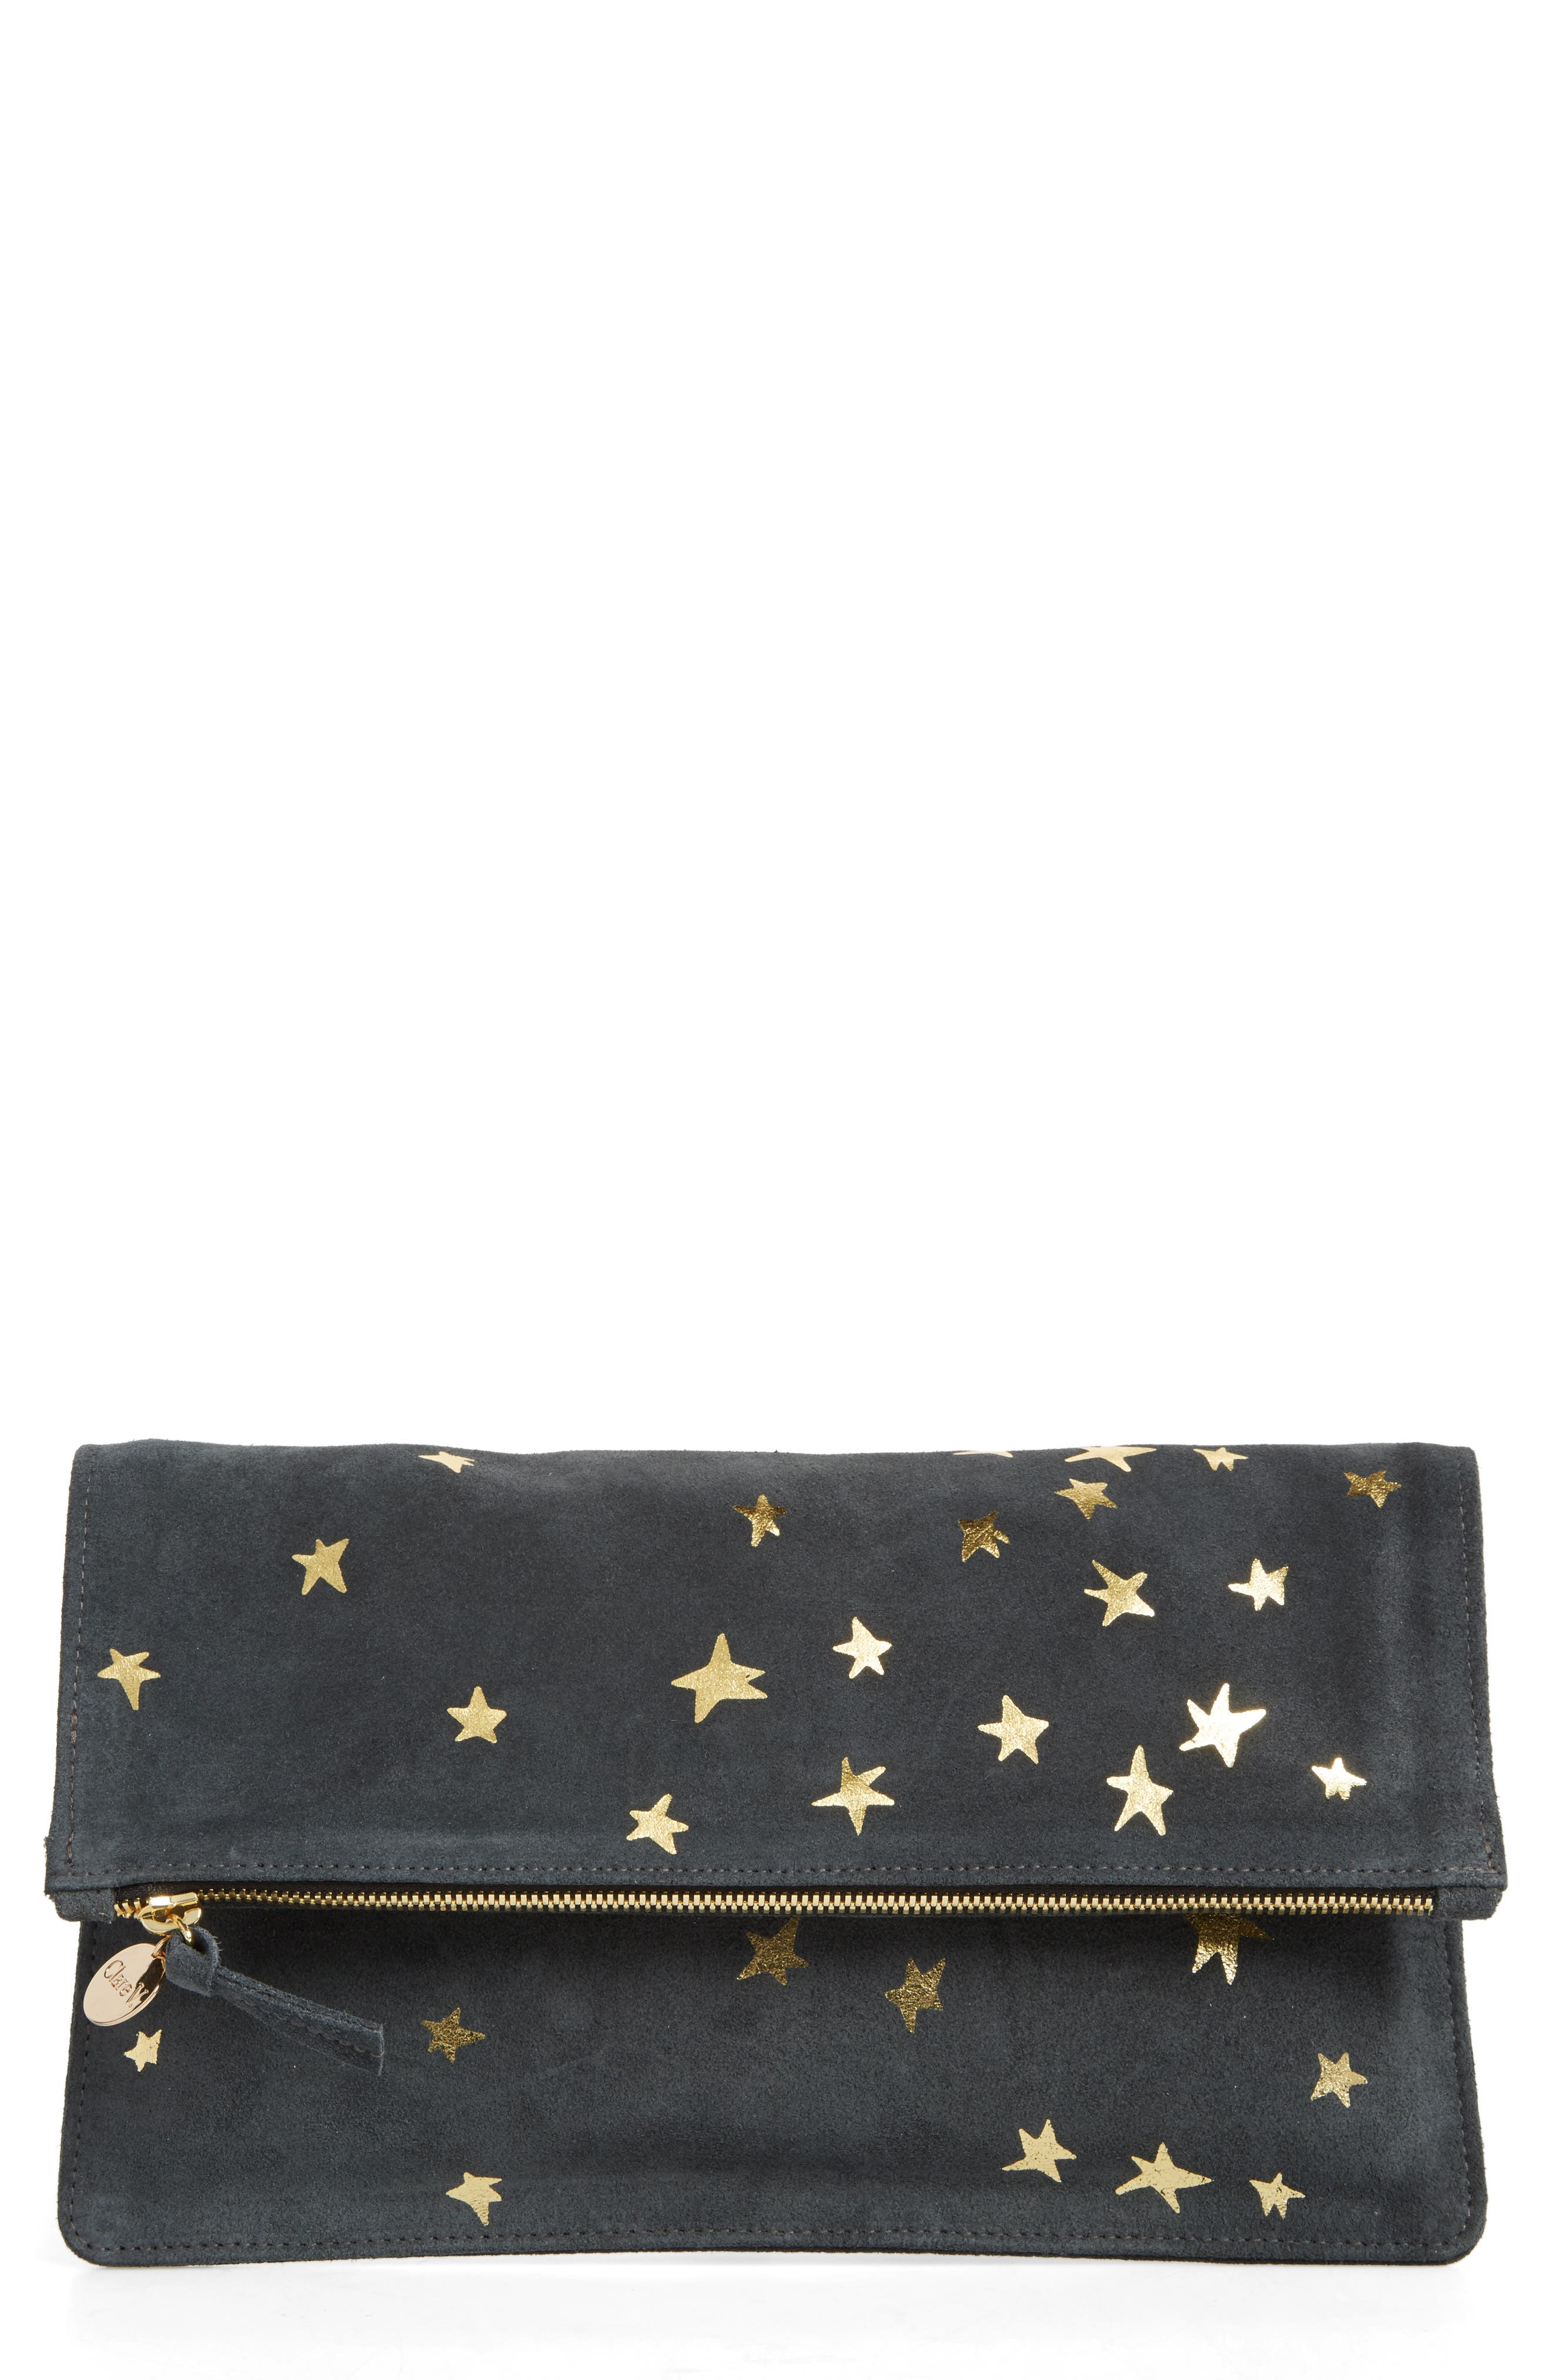 Margot Star Print Foldover Suede Clutch,                             Main thumbnail 1, color,                             020